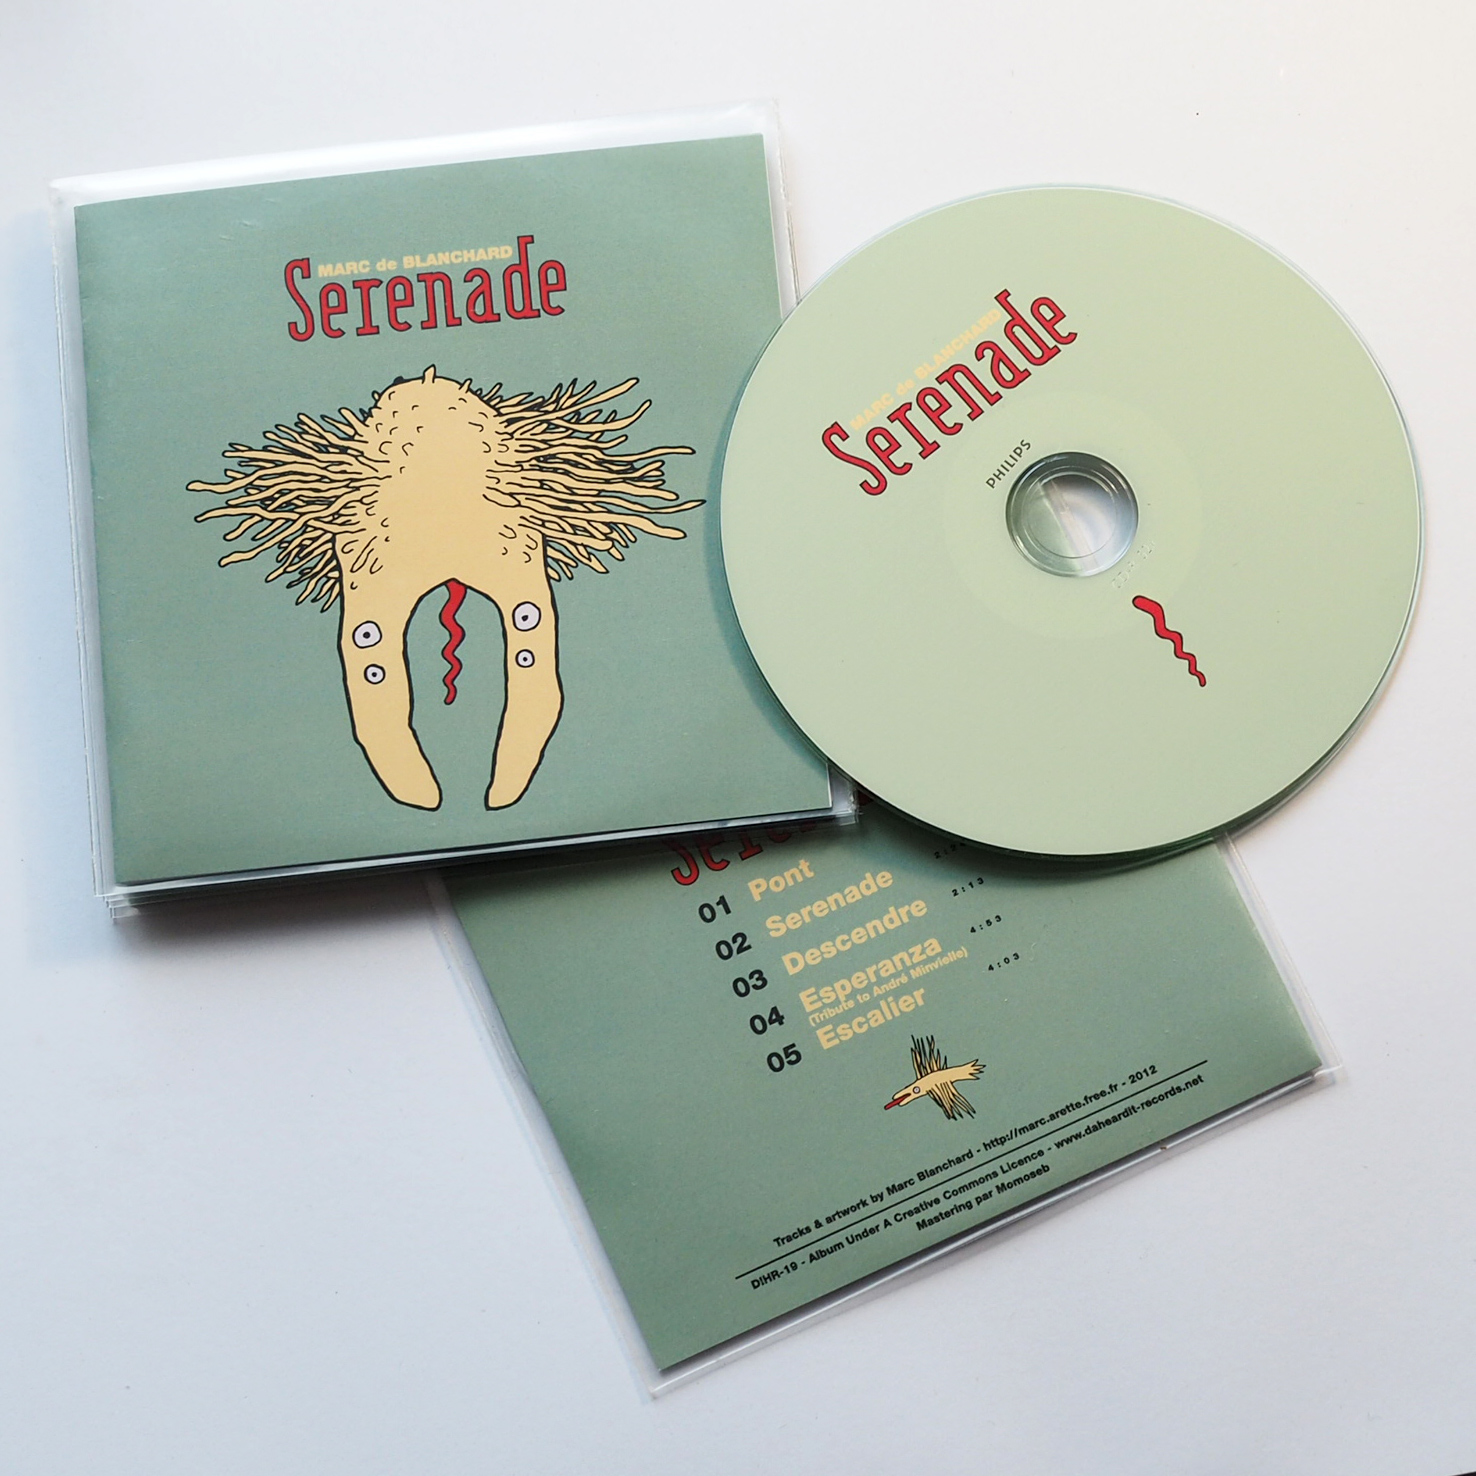 Marc de Blanchard - Graphisme - CD handmade DIY - Da Heard It Records